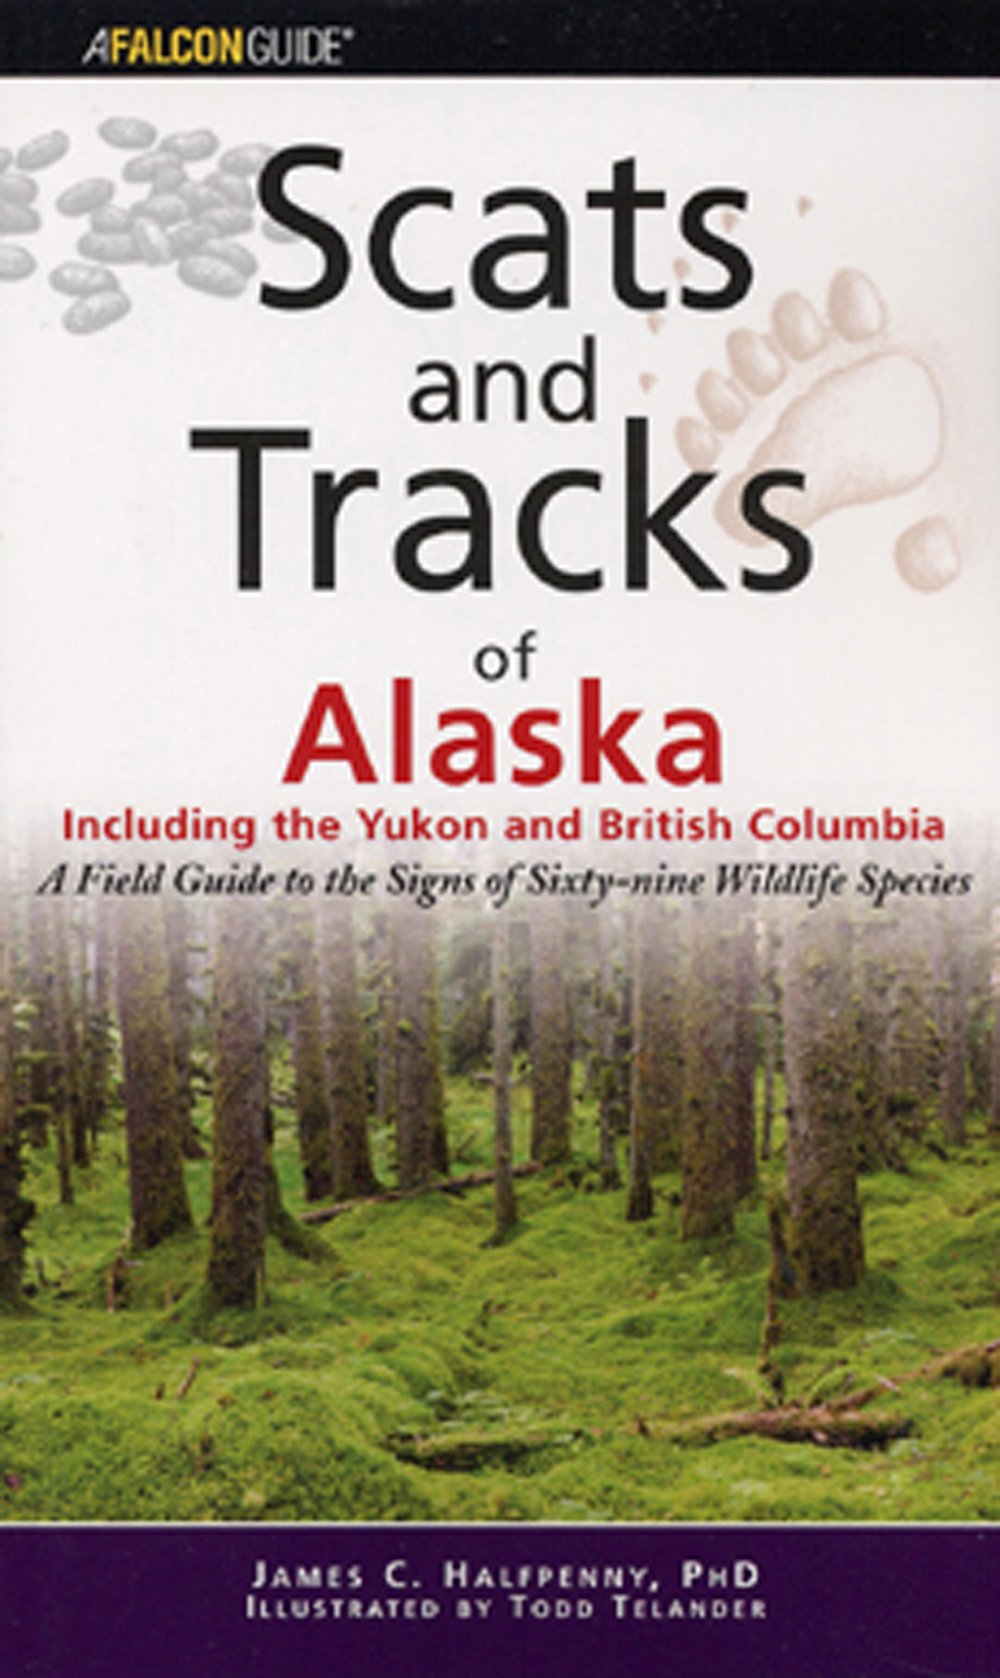 Scats and Tracks of Alaska: A Field Guide to the Signs of 69 Wildlife Species